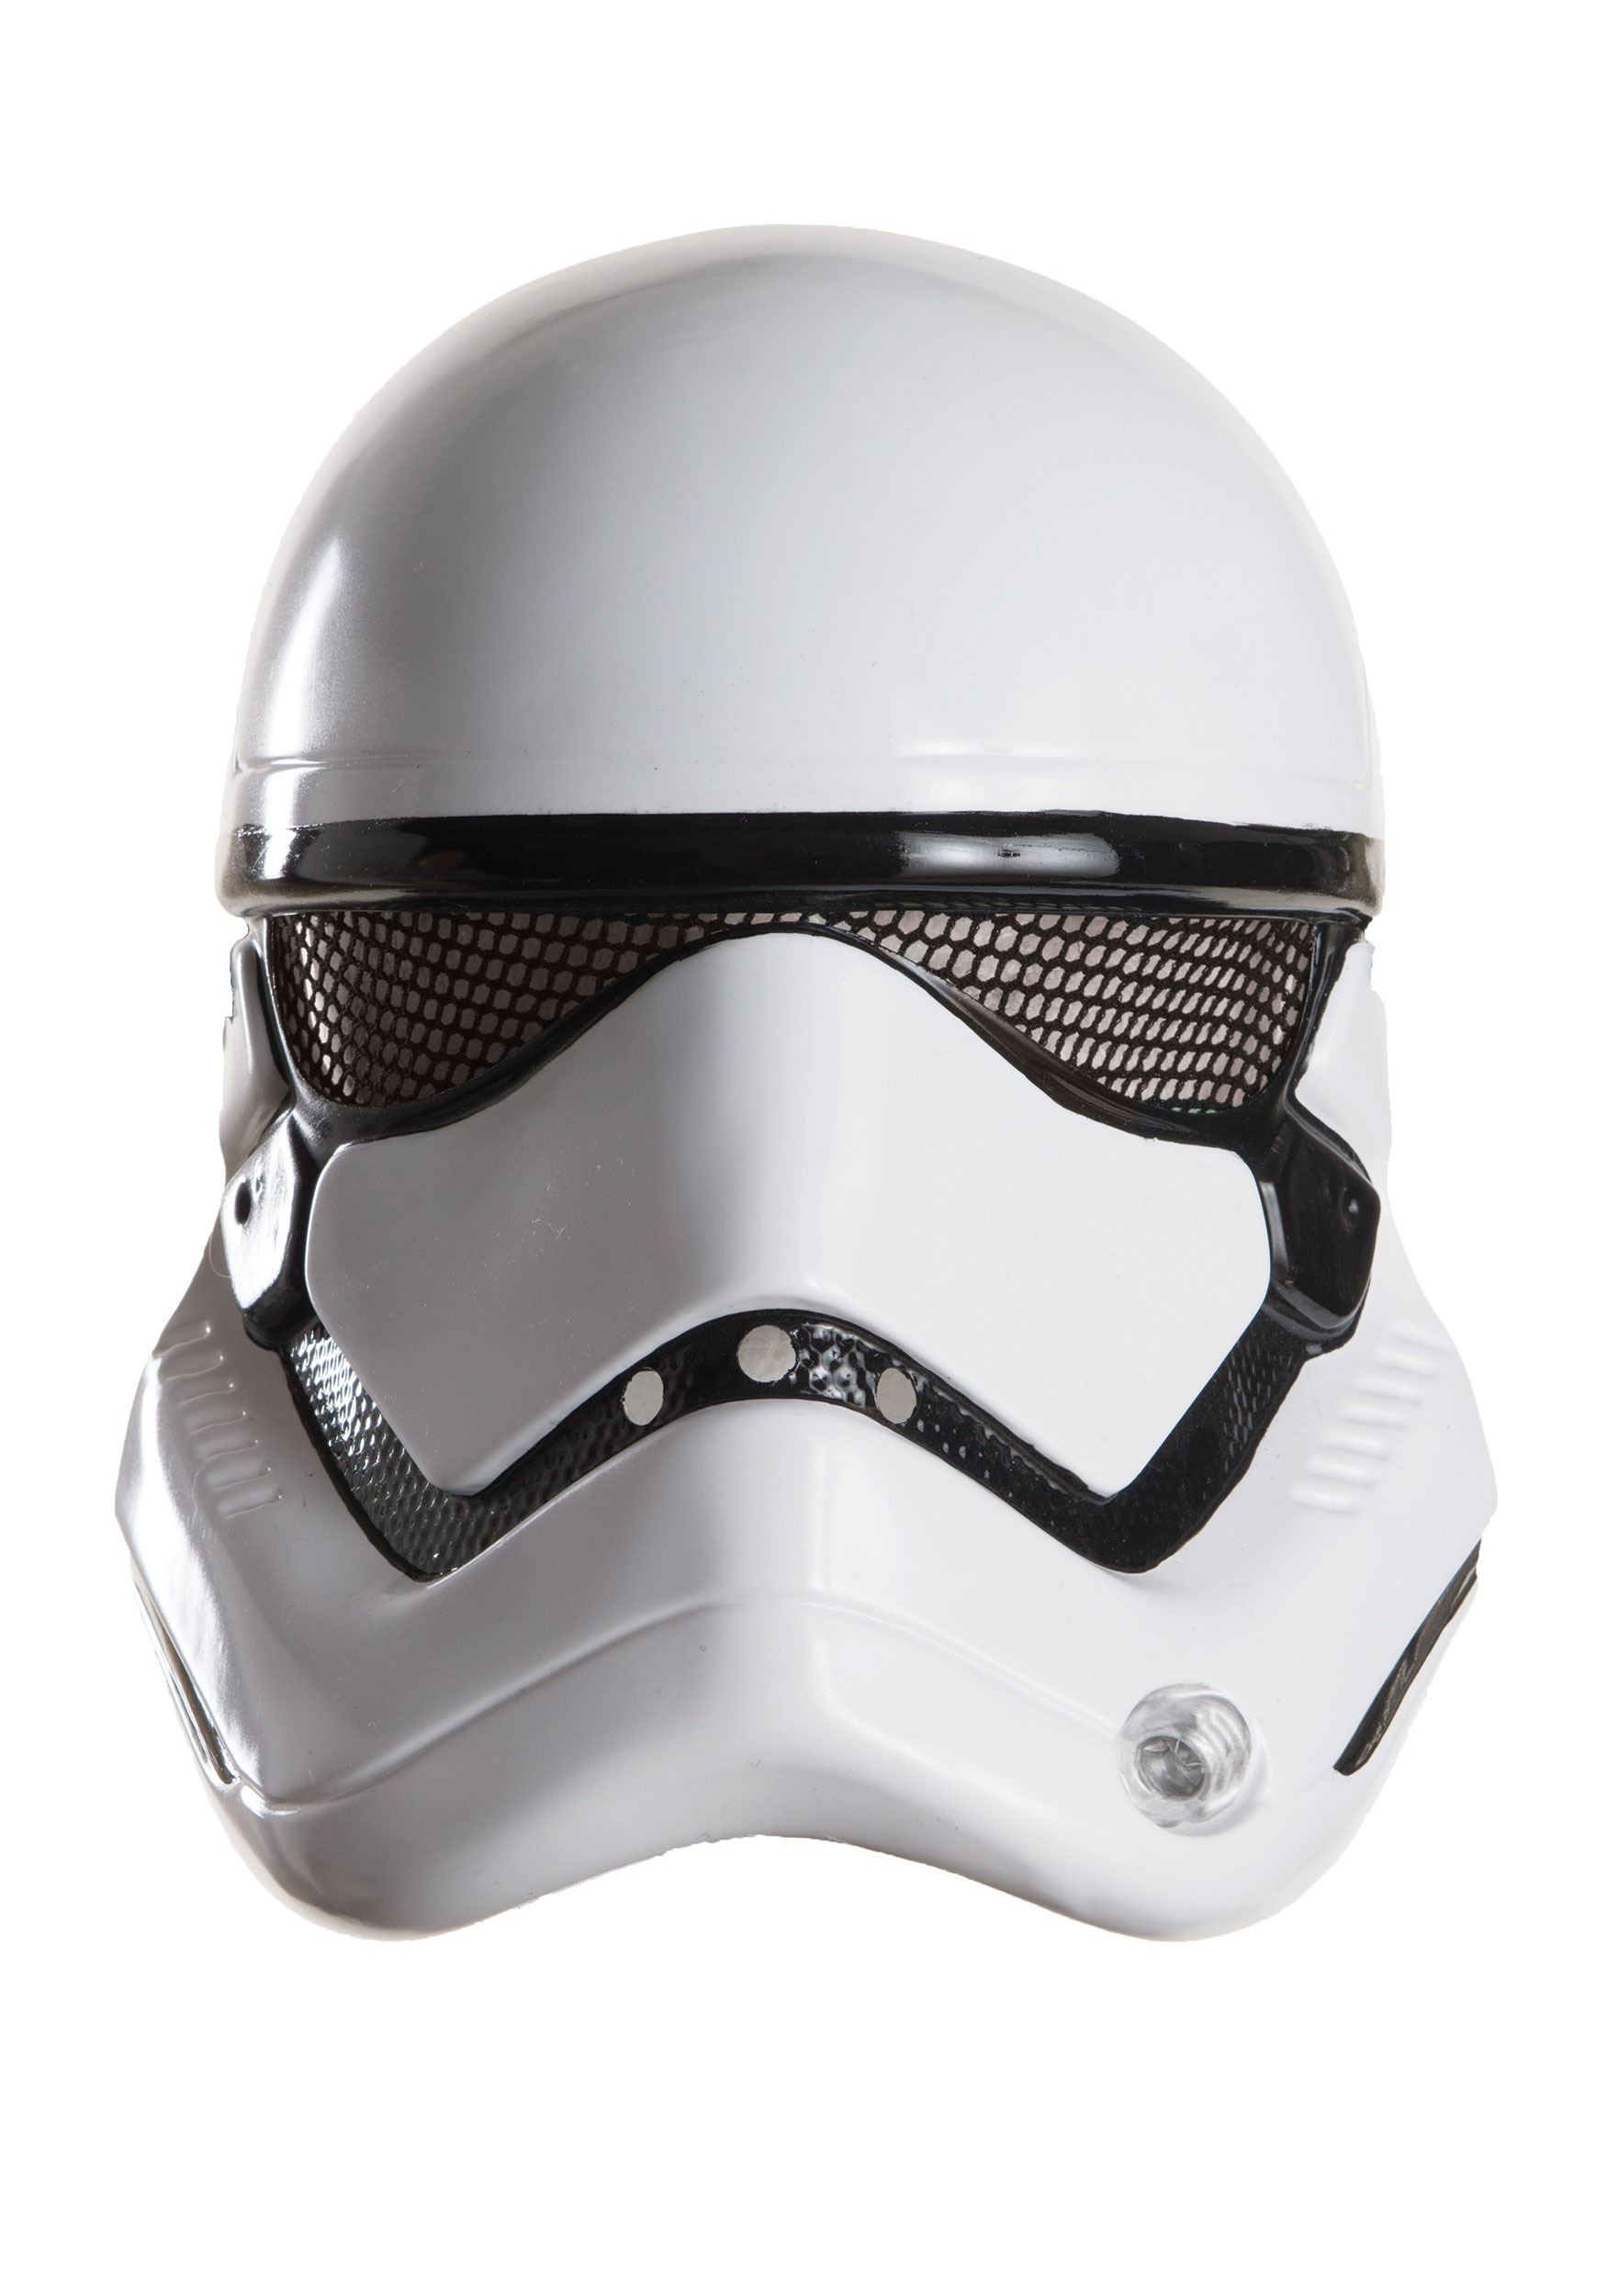 Star Wars Episode VII Boys Stormtrooper Half Helmet RU32295